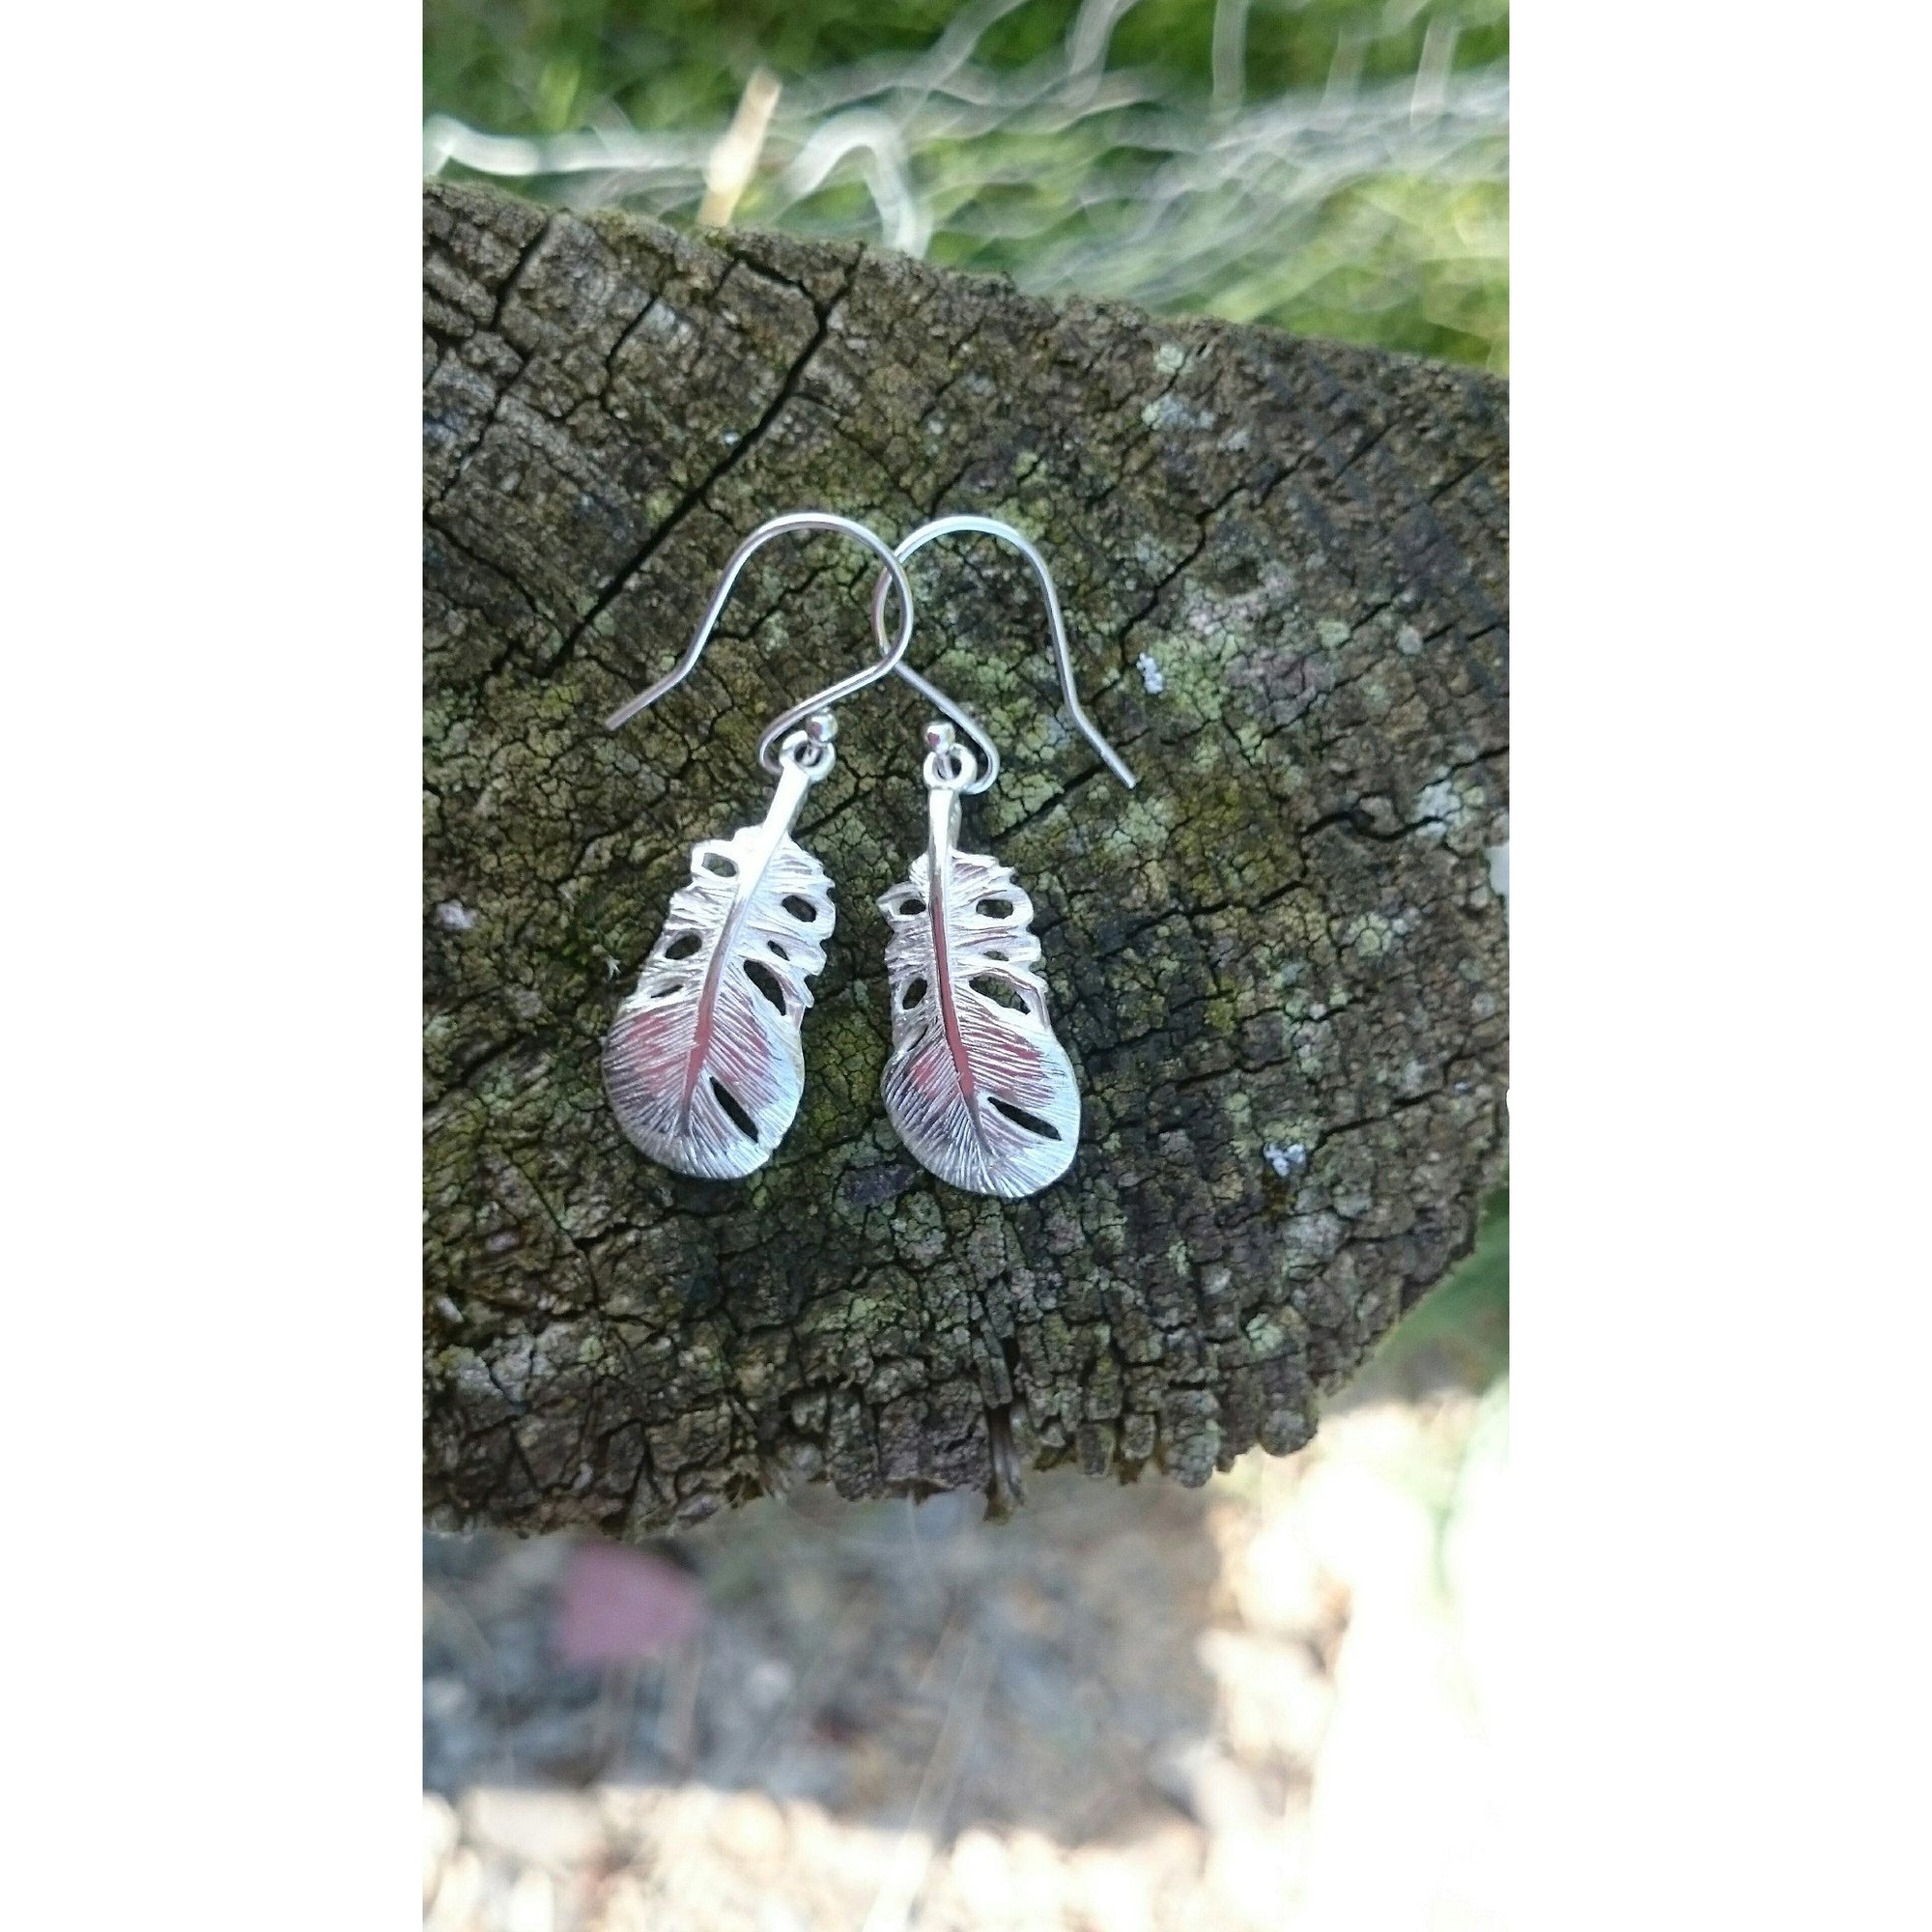 These Baby Angel Feather Drop Earrings are a special gift from the Angels.